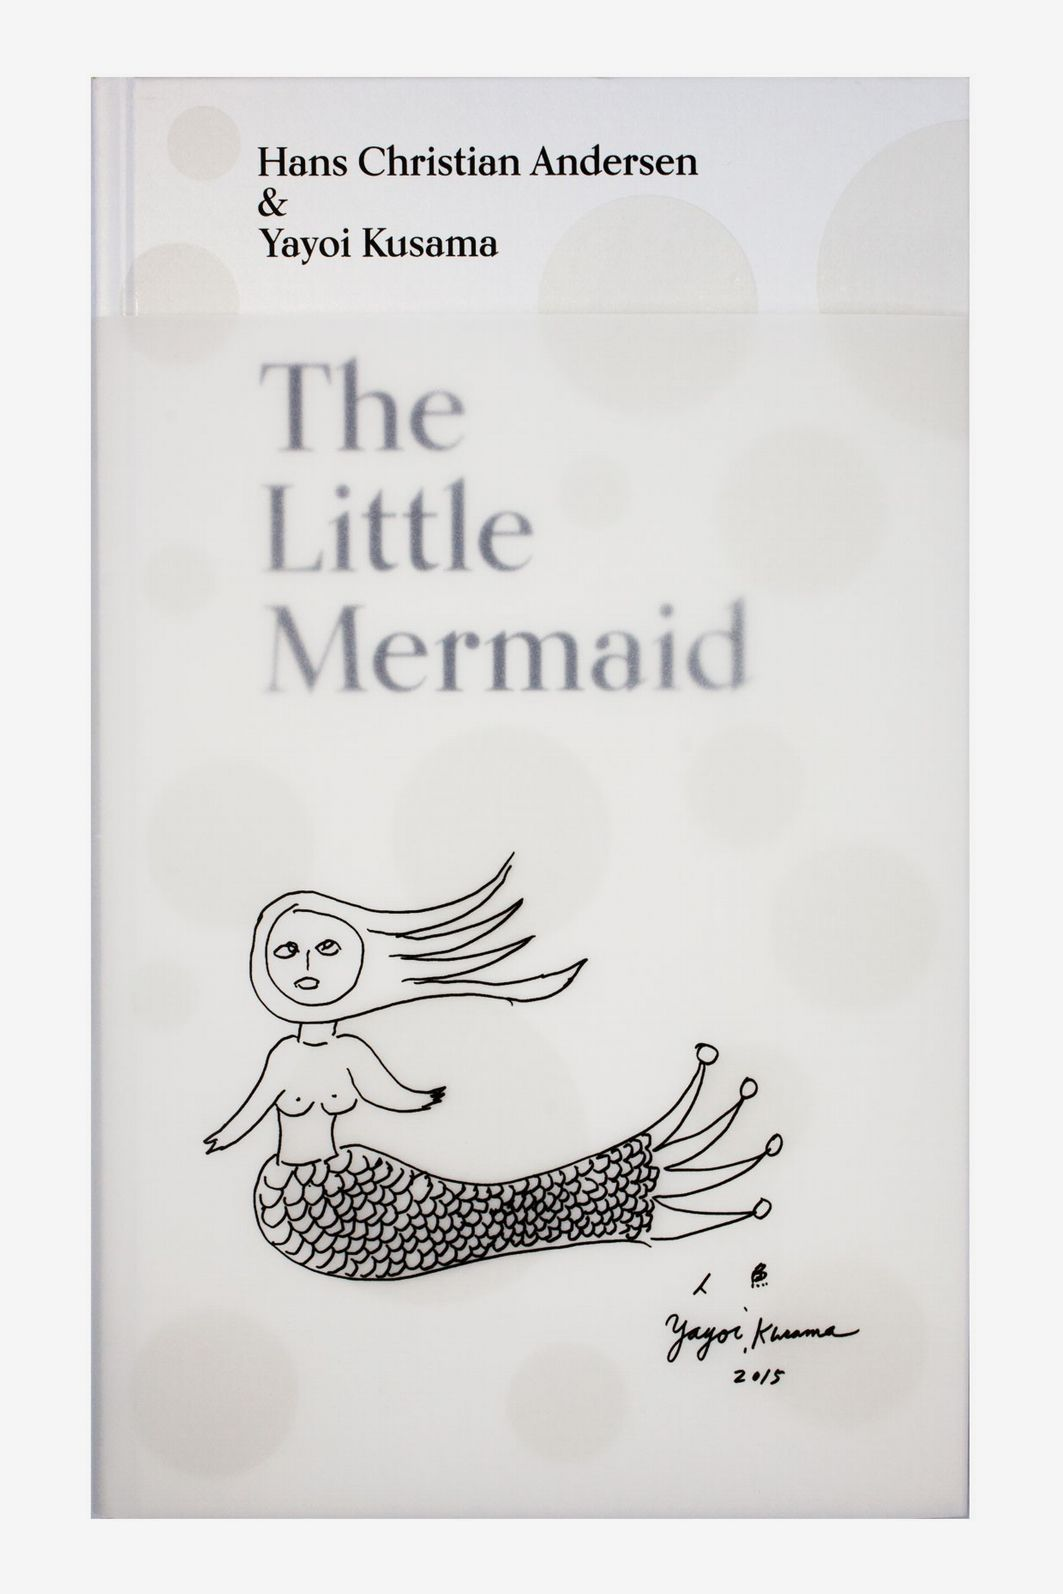 The Little Mermaid, by Hans Christian Andersen & Yayoi Kusama